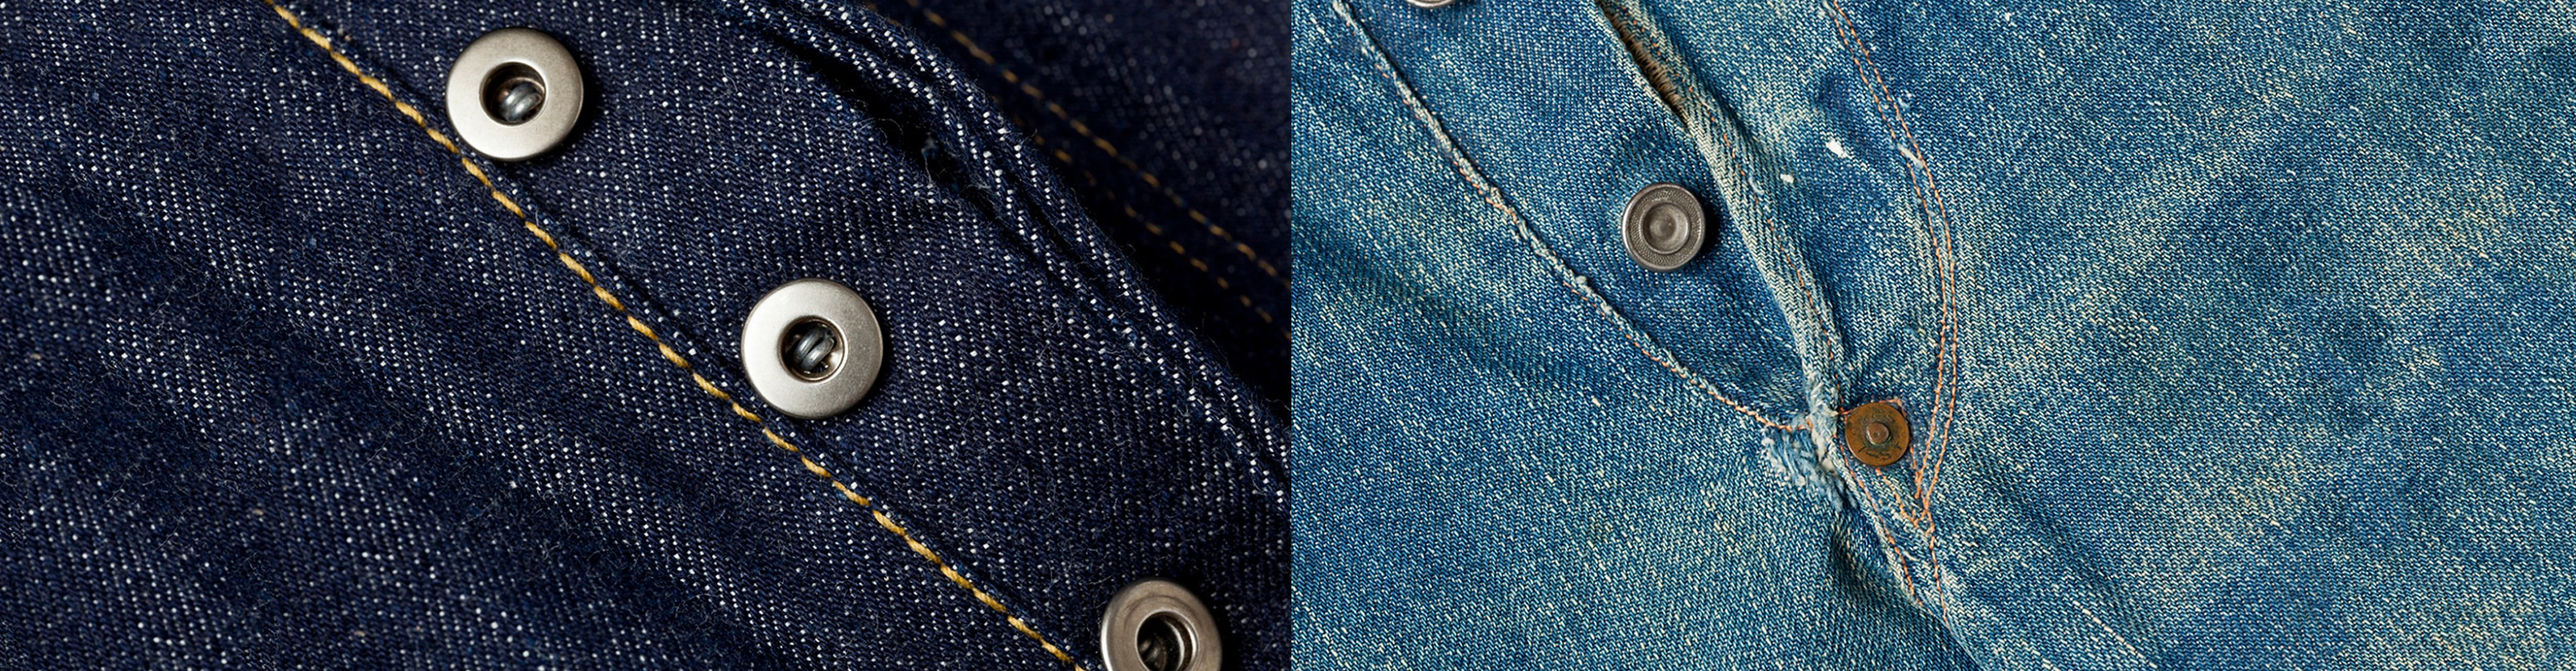 cd5df8320 501® Jeans - Original, Vintage and New Styles of the Iconic Jean